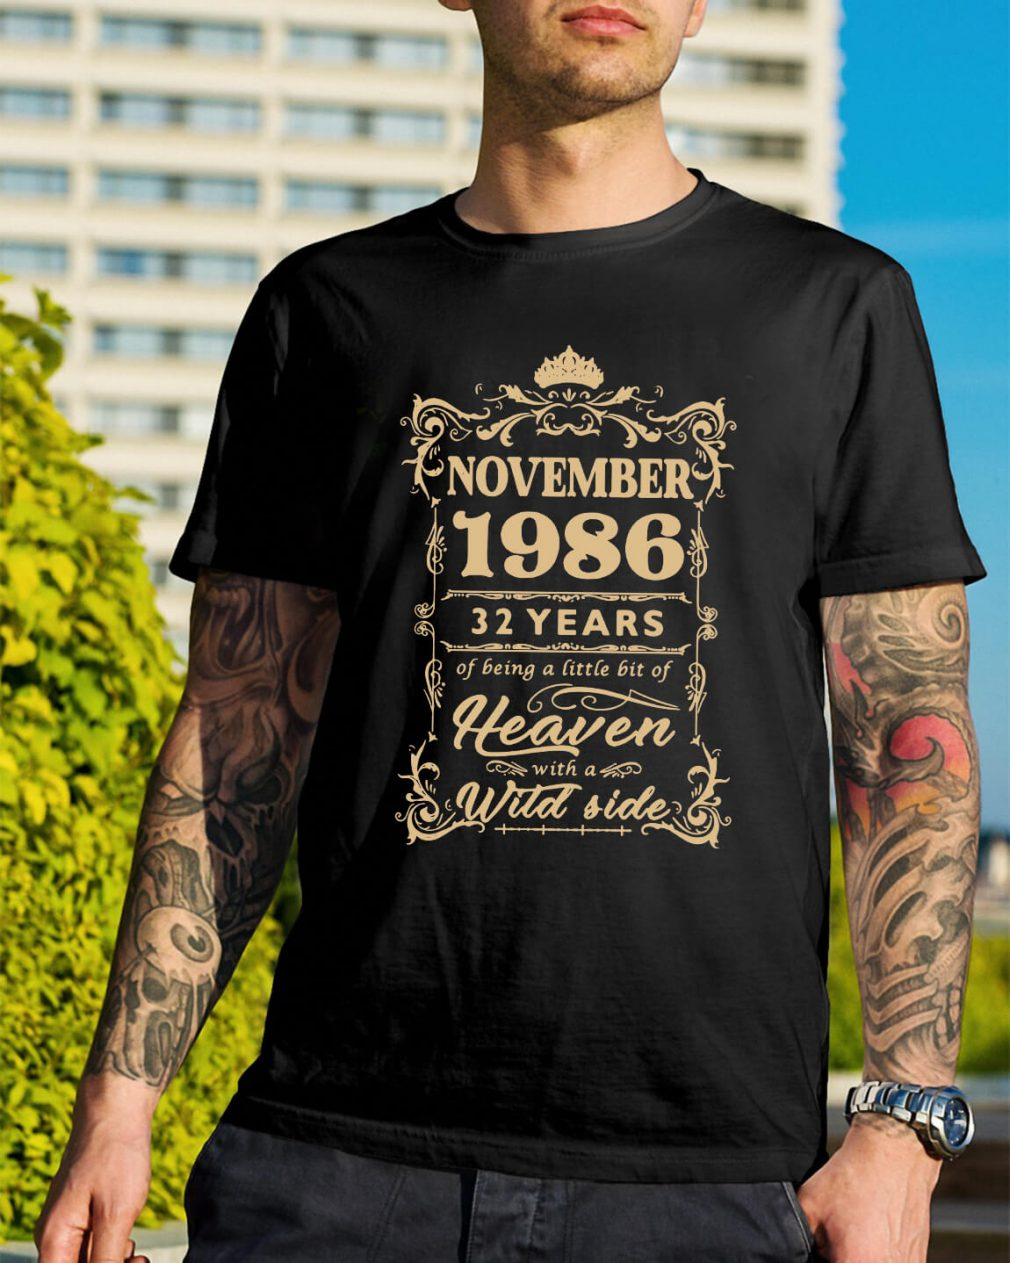 November 1986 32 years of being a little bit of heaven with a wild side shirt